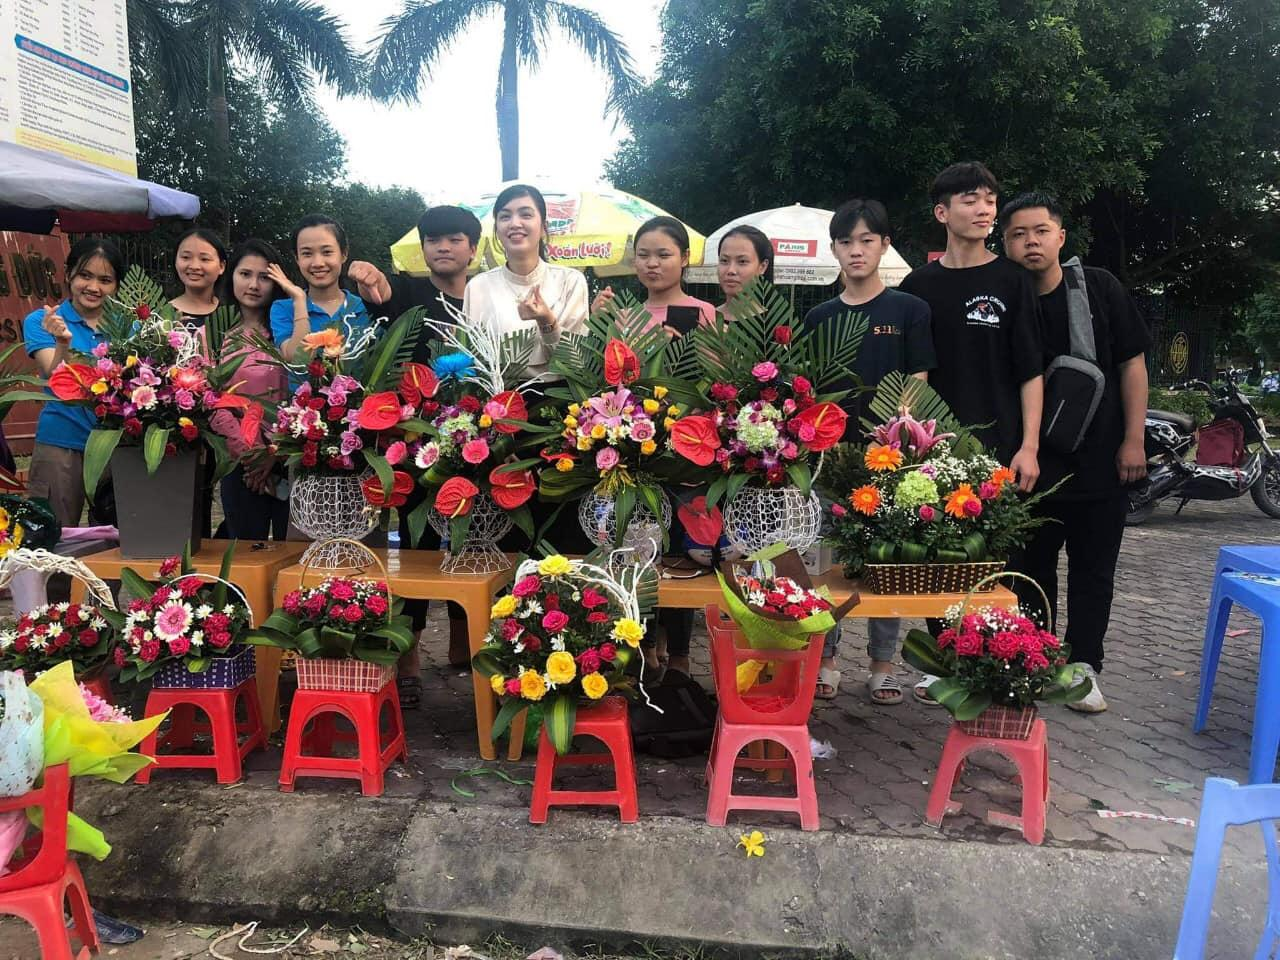 Image may contain: 11 people, people standing, flower and outdoor